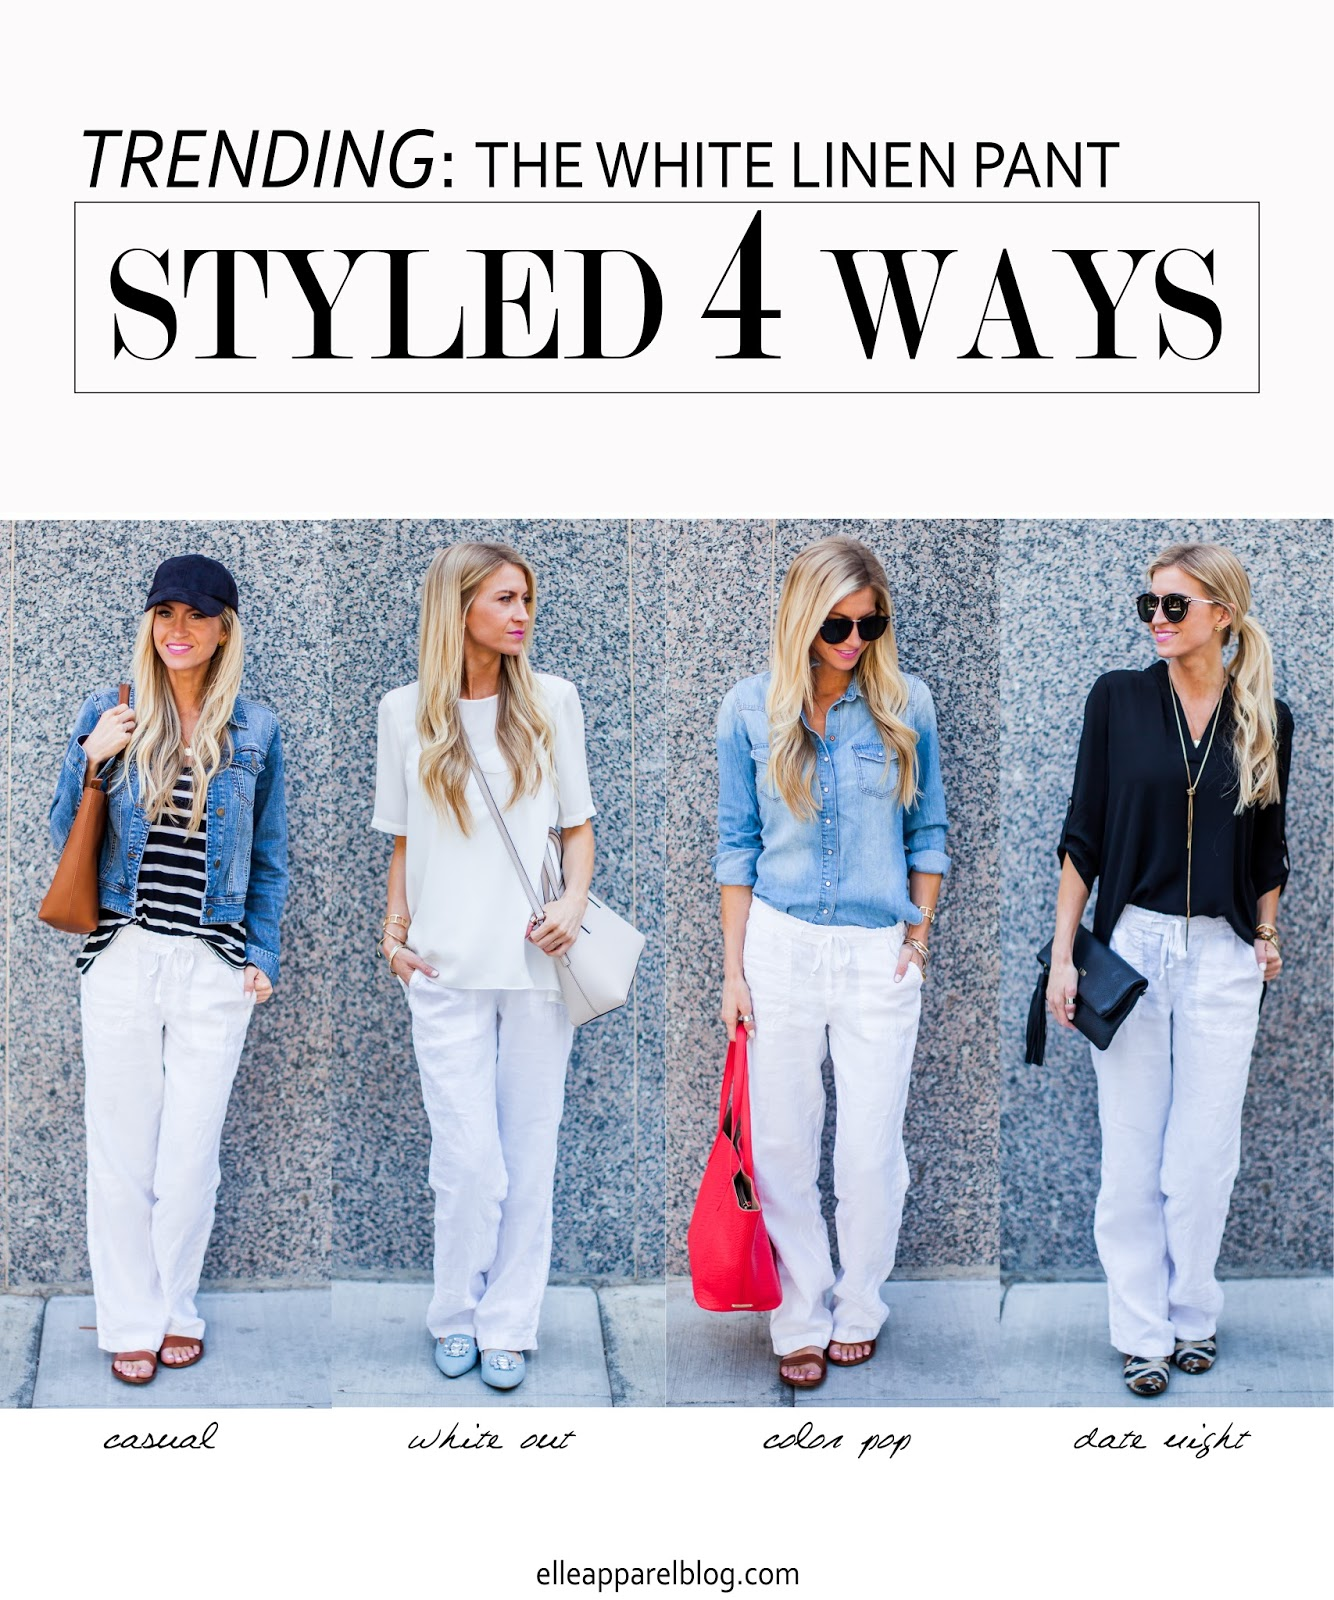 THE TOP TREND SERIES: FOUR WAYS TO STYLE WHITE LINEN PANTS